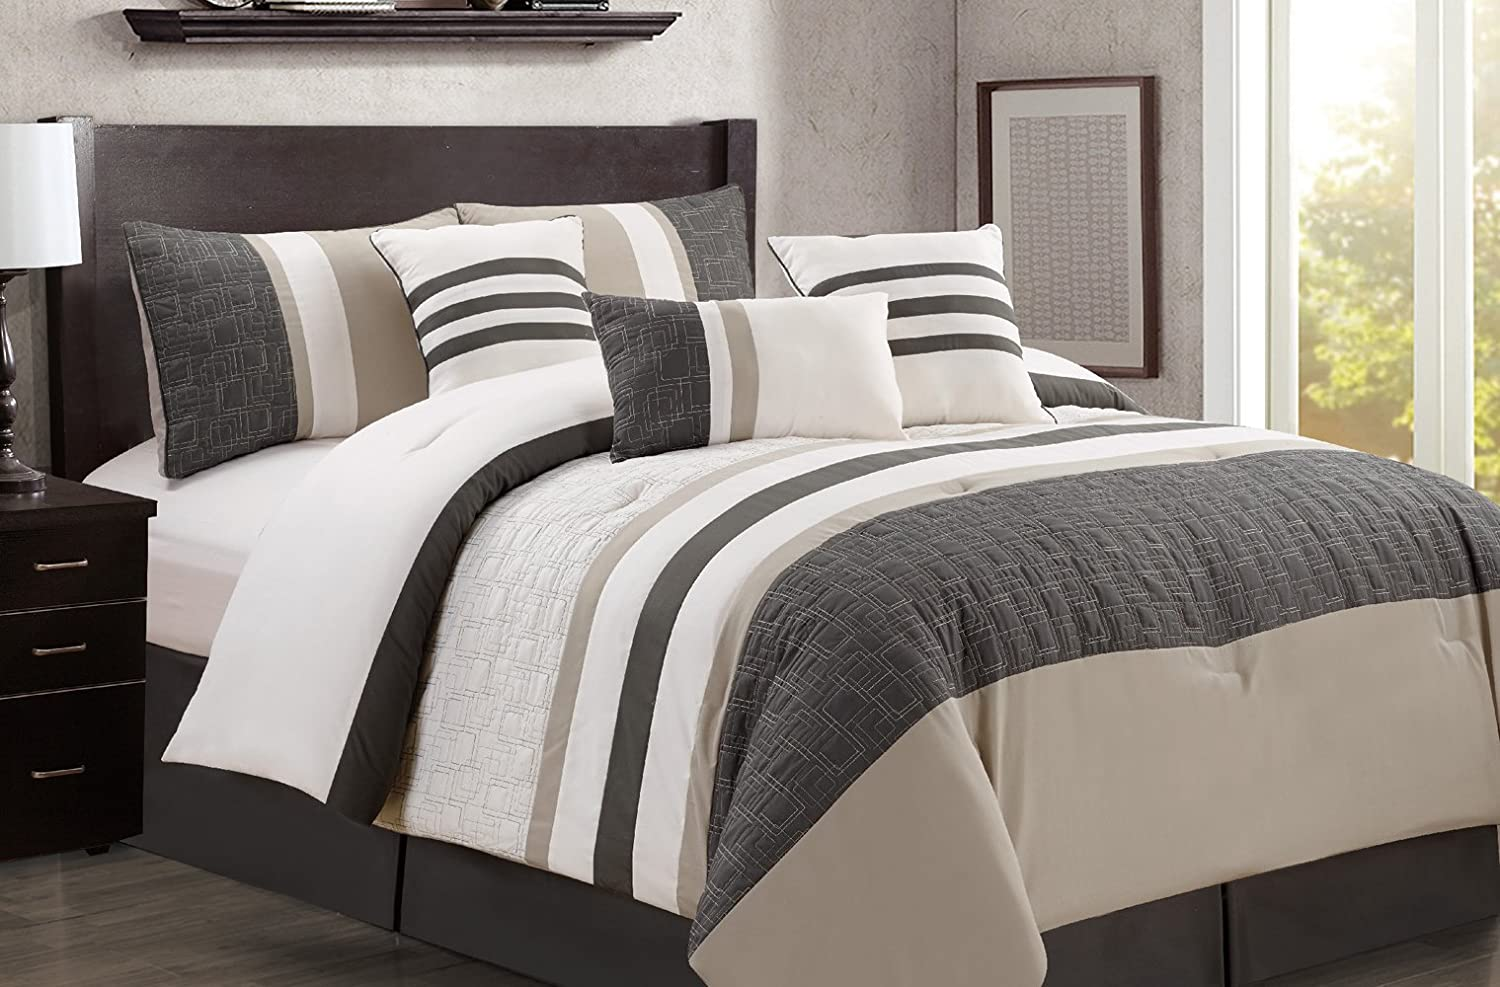 BEDFORD 7PC COMFORTER SET, INCLUDES ONE COMFORTER, 2 PILLOW SHAMS, 3 CUSHIONS AND A BEDSKIRT (Grey, Queen) LS Home Fashions